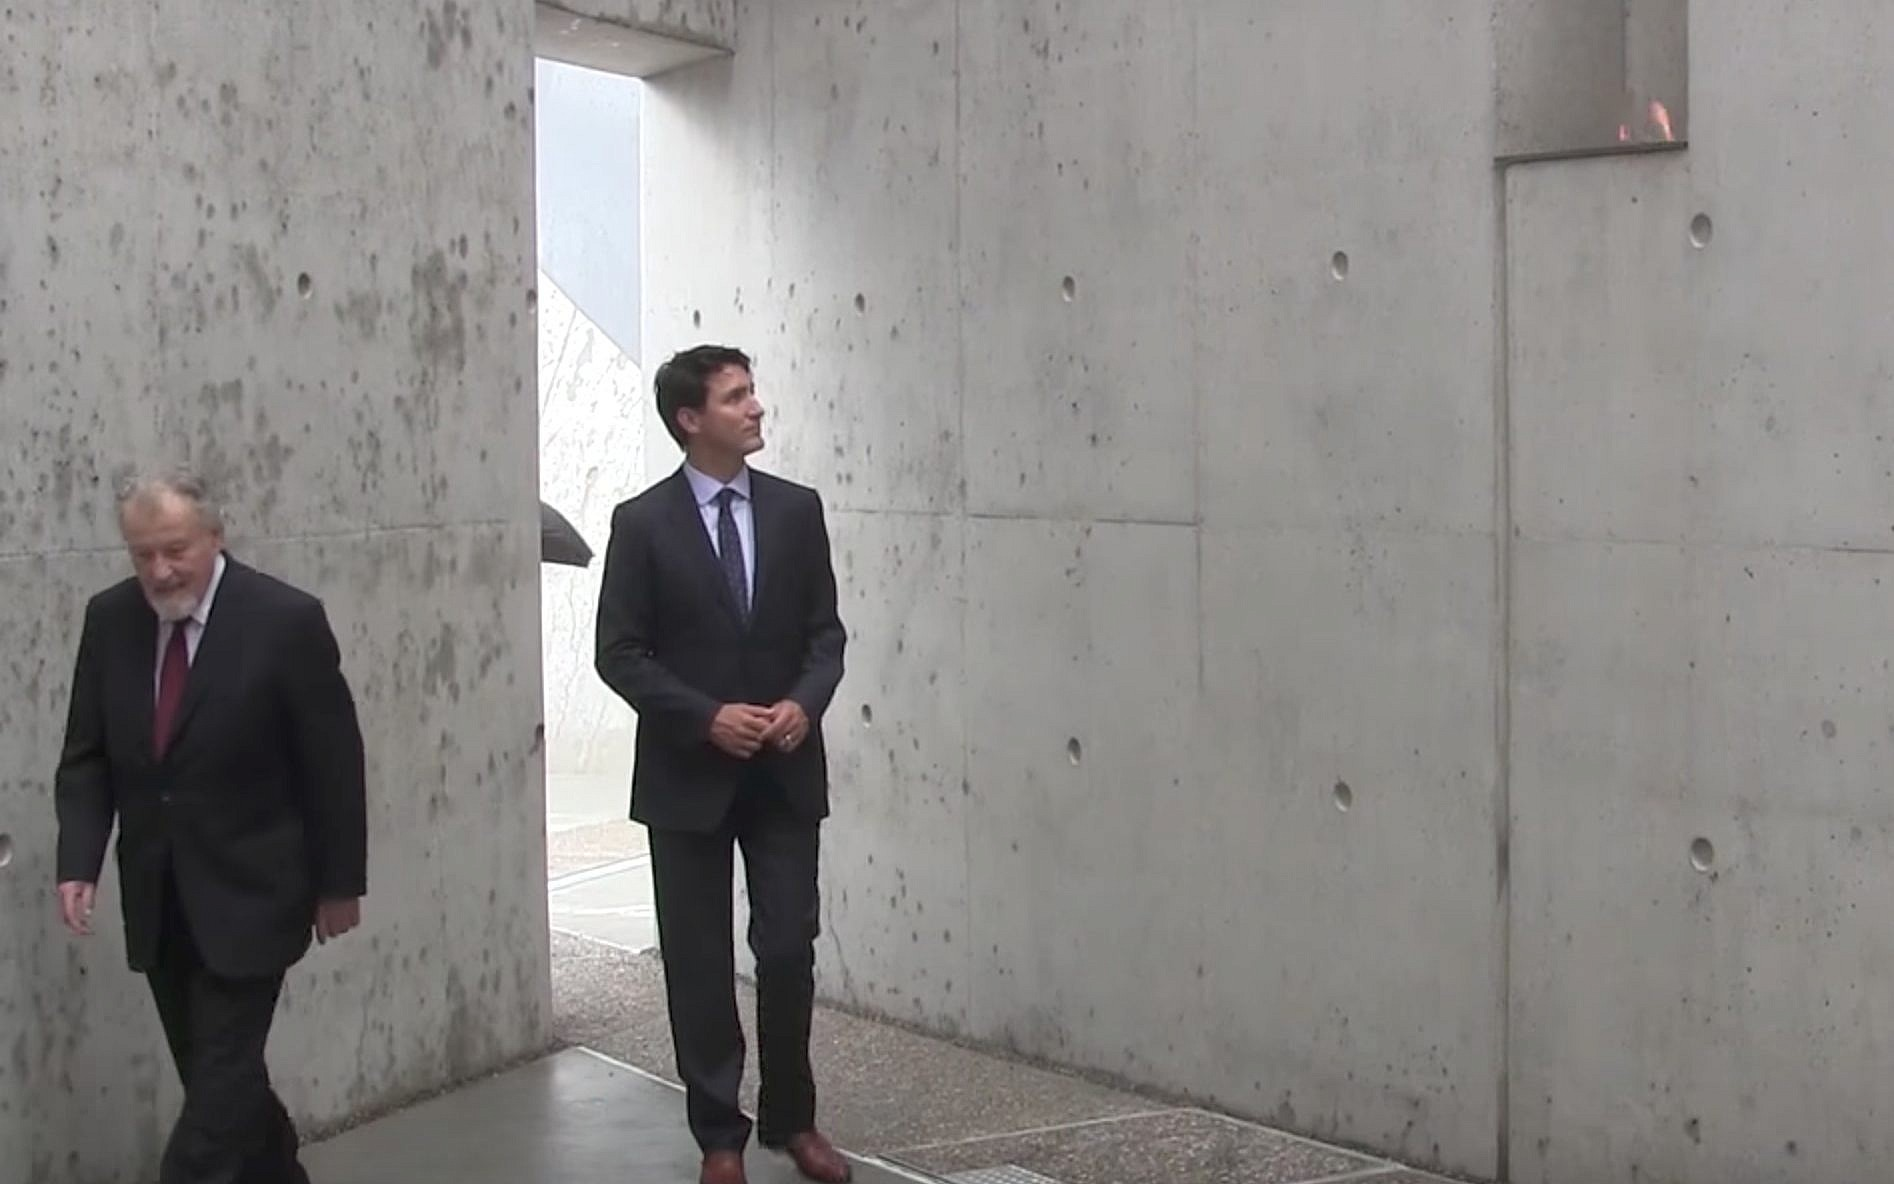 Canada takes down Holocaust memorial after forgetting to mention Jewish people